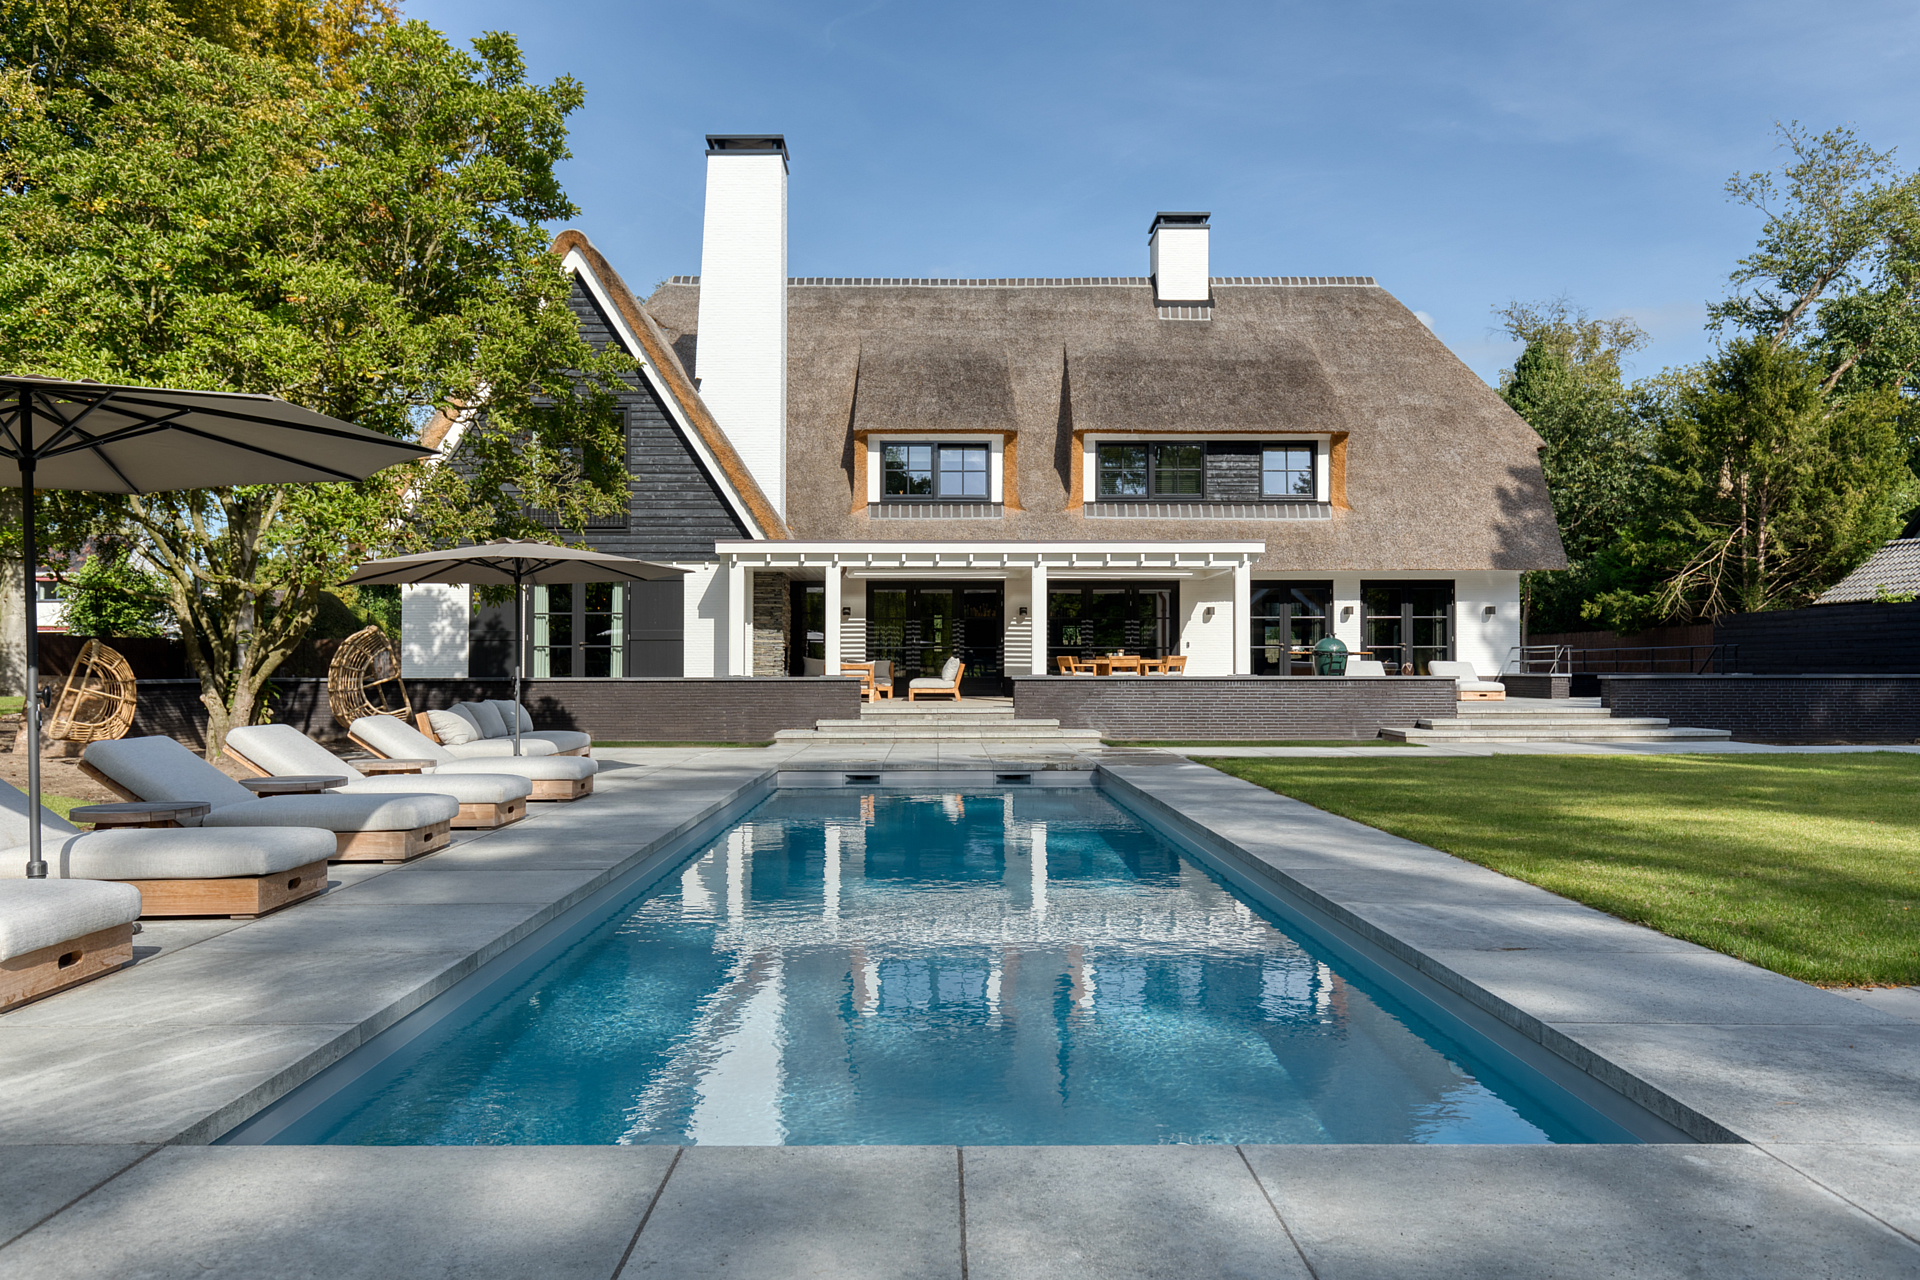 Backyard pool with cast concrete tiles with lounge beds with overlooking thatchroof estate